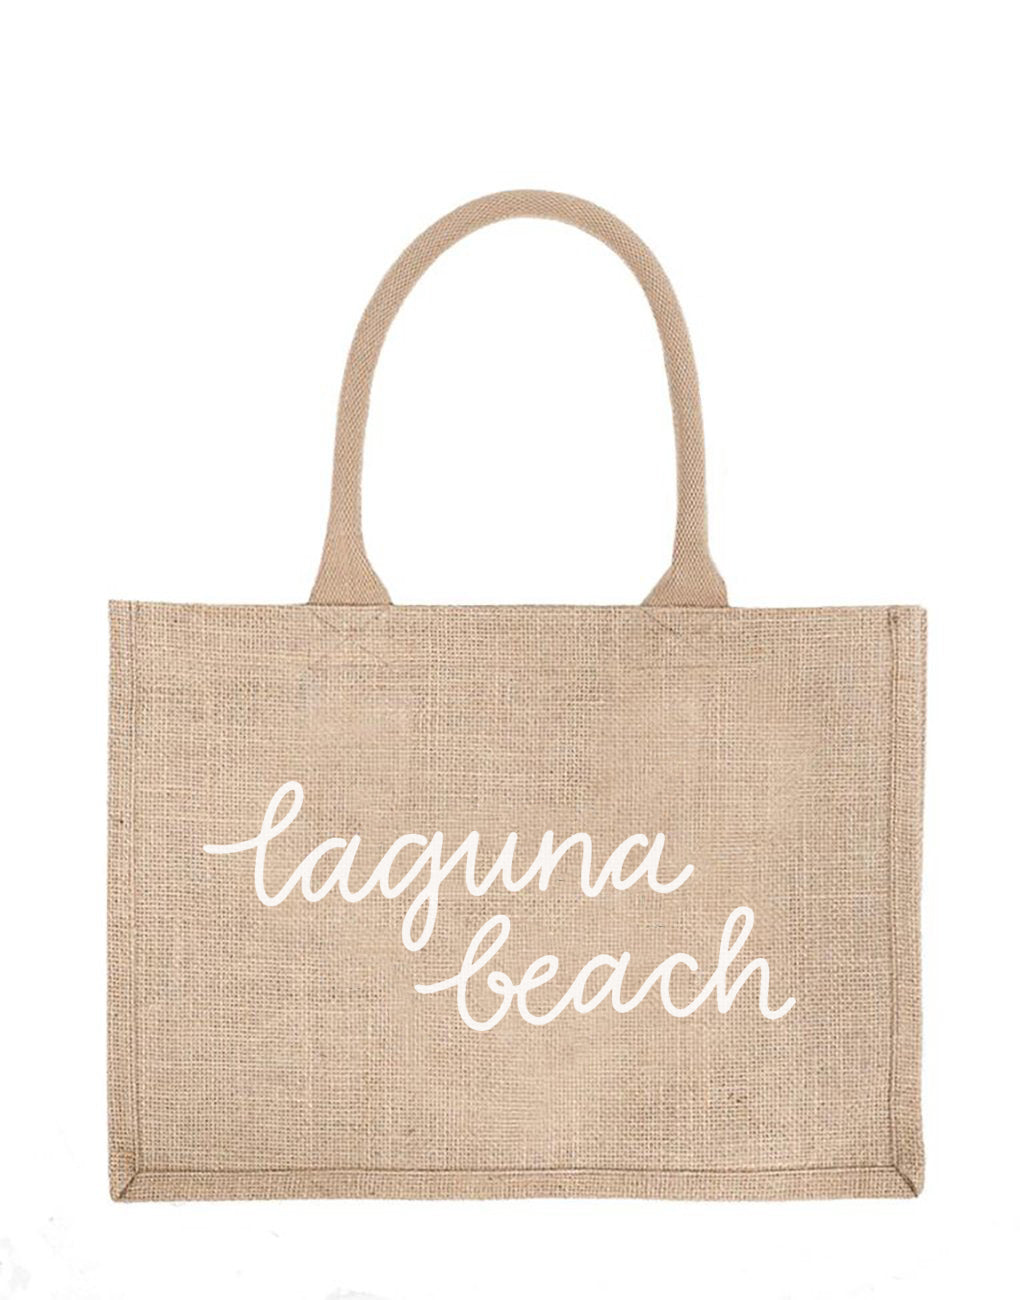 Small Laguna Beach Reusable Shopping Tote In White Font | The Little Market